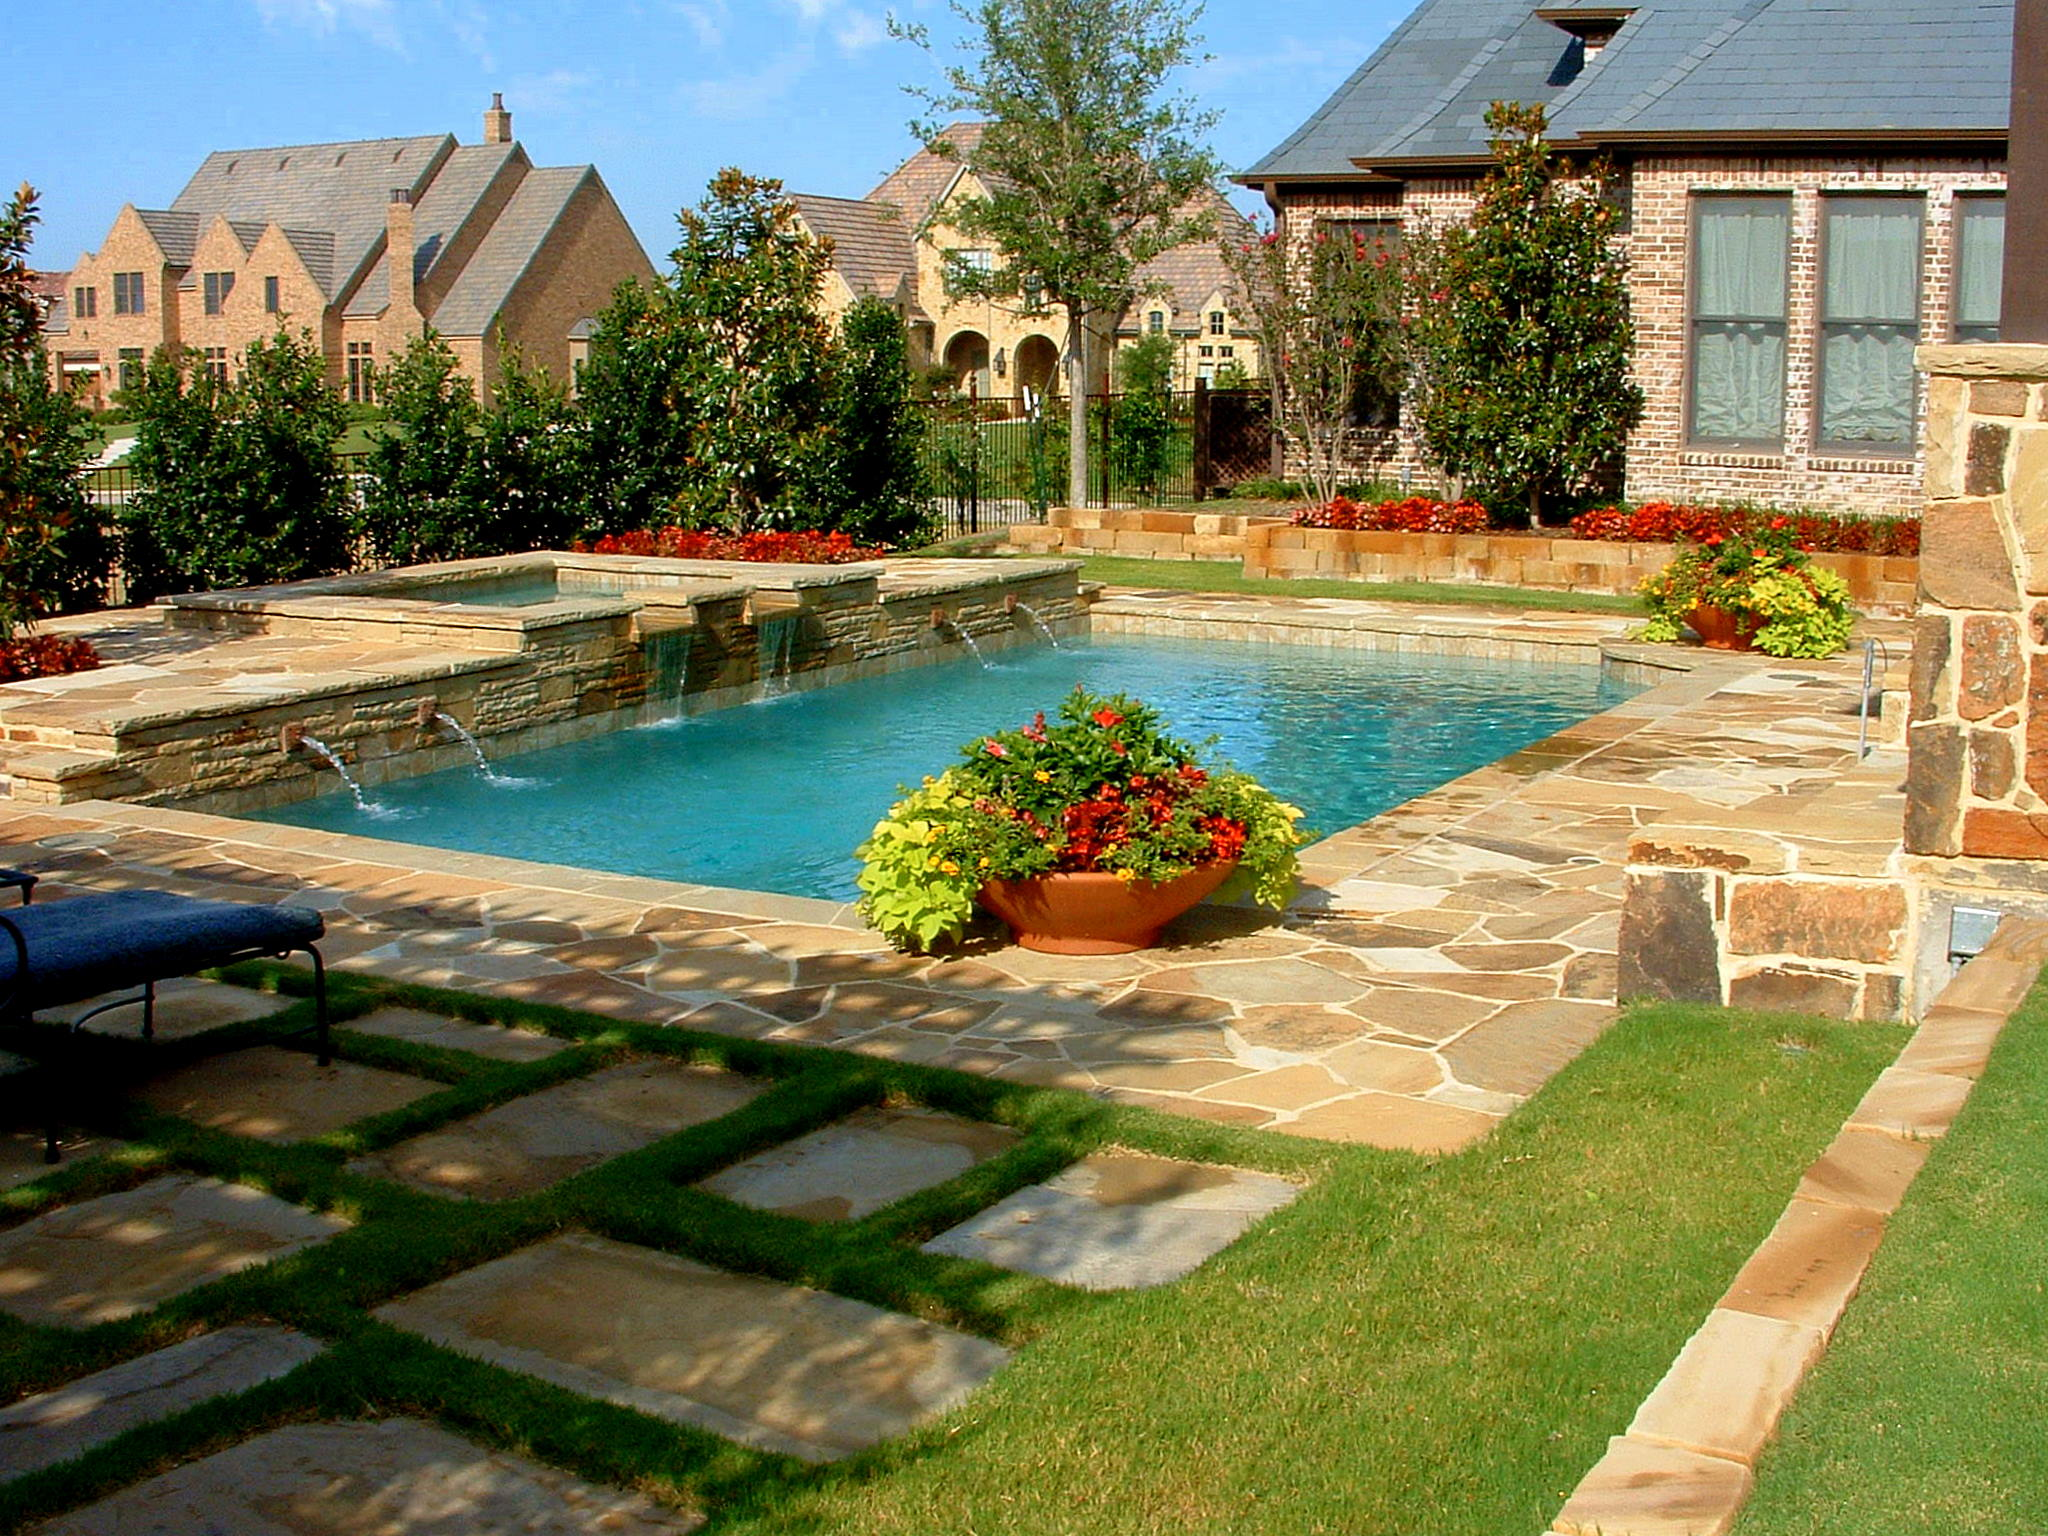 Backyard landscaping ideas swimming pool design for Swimming pools ideas landscape